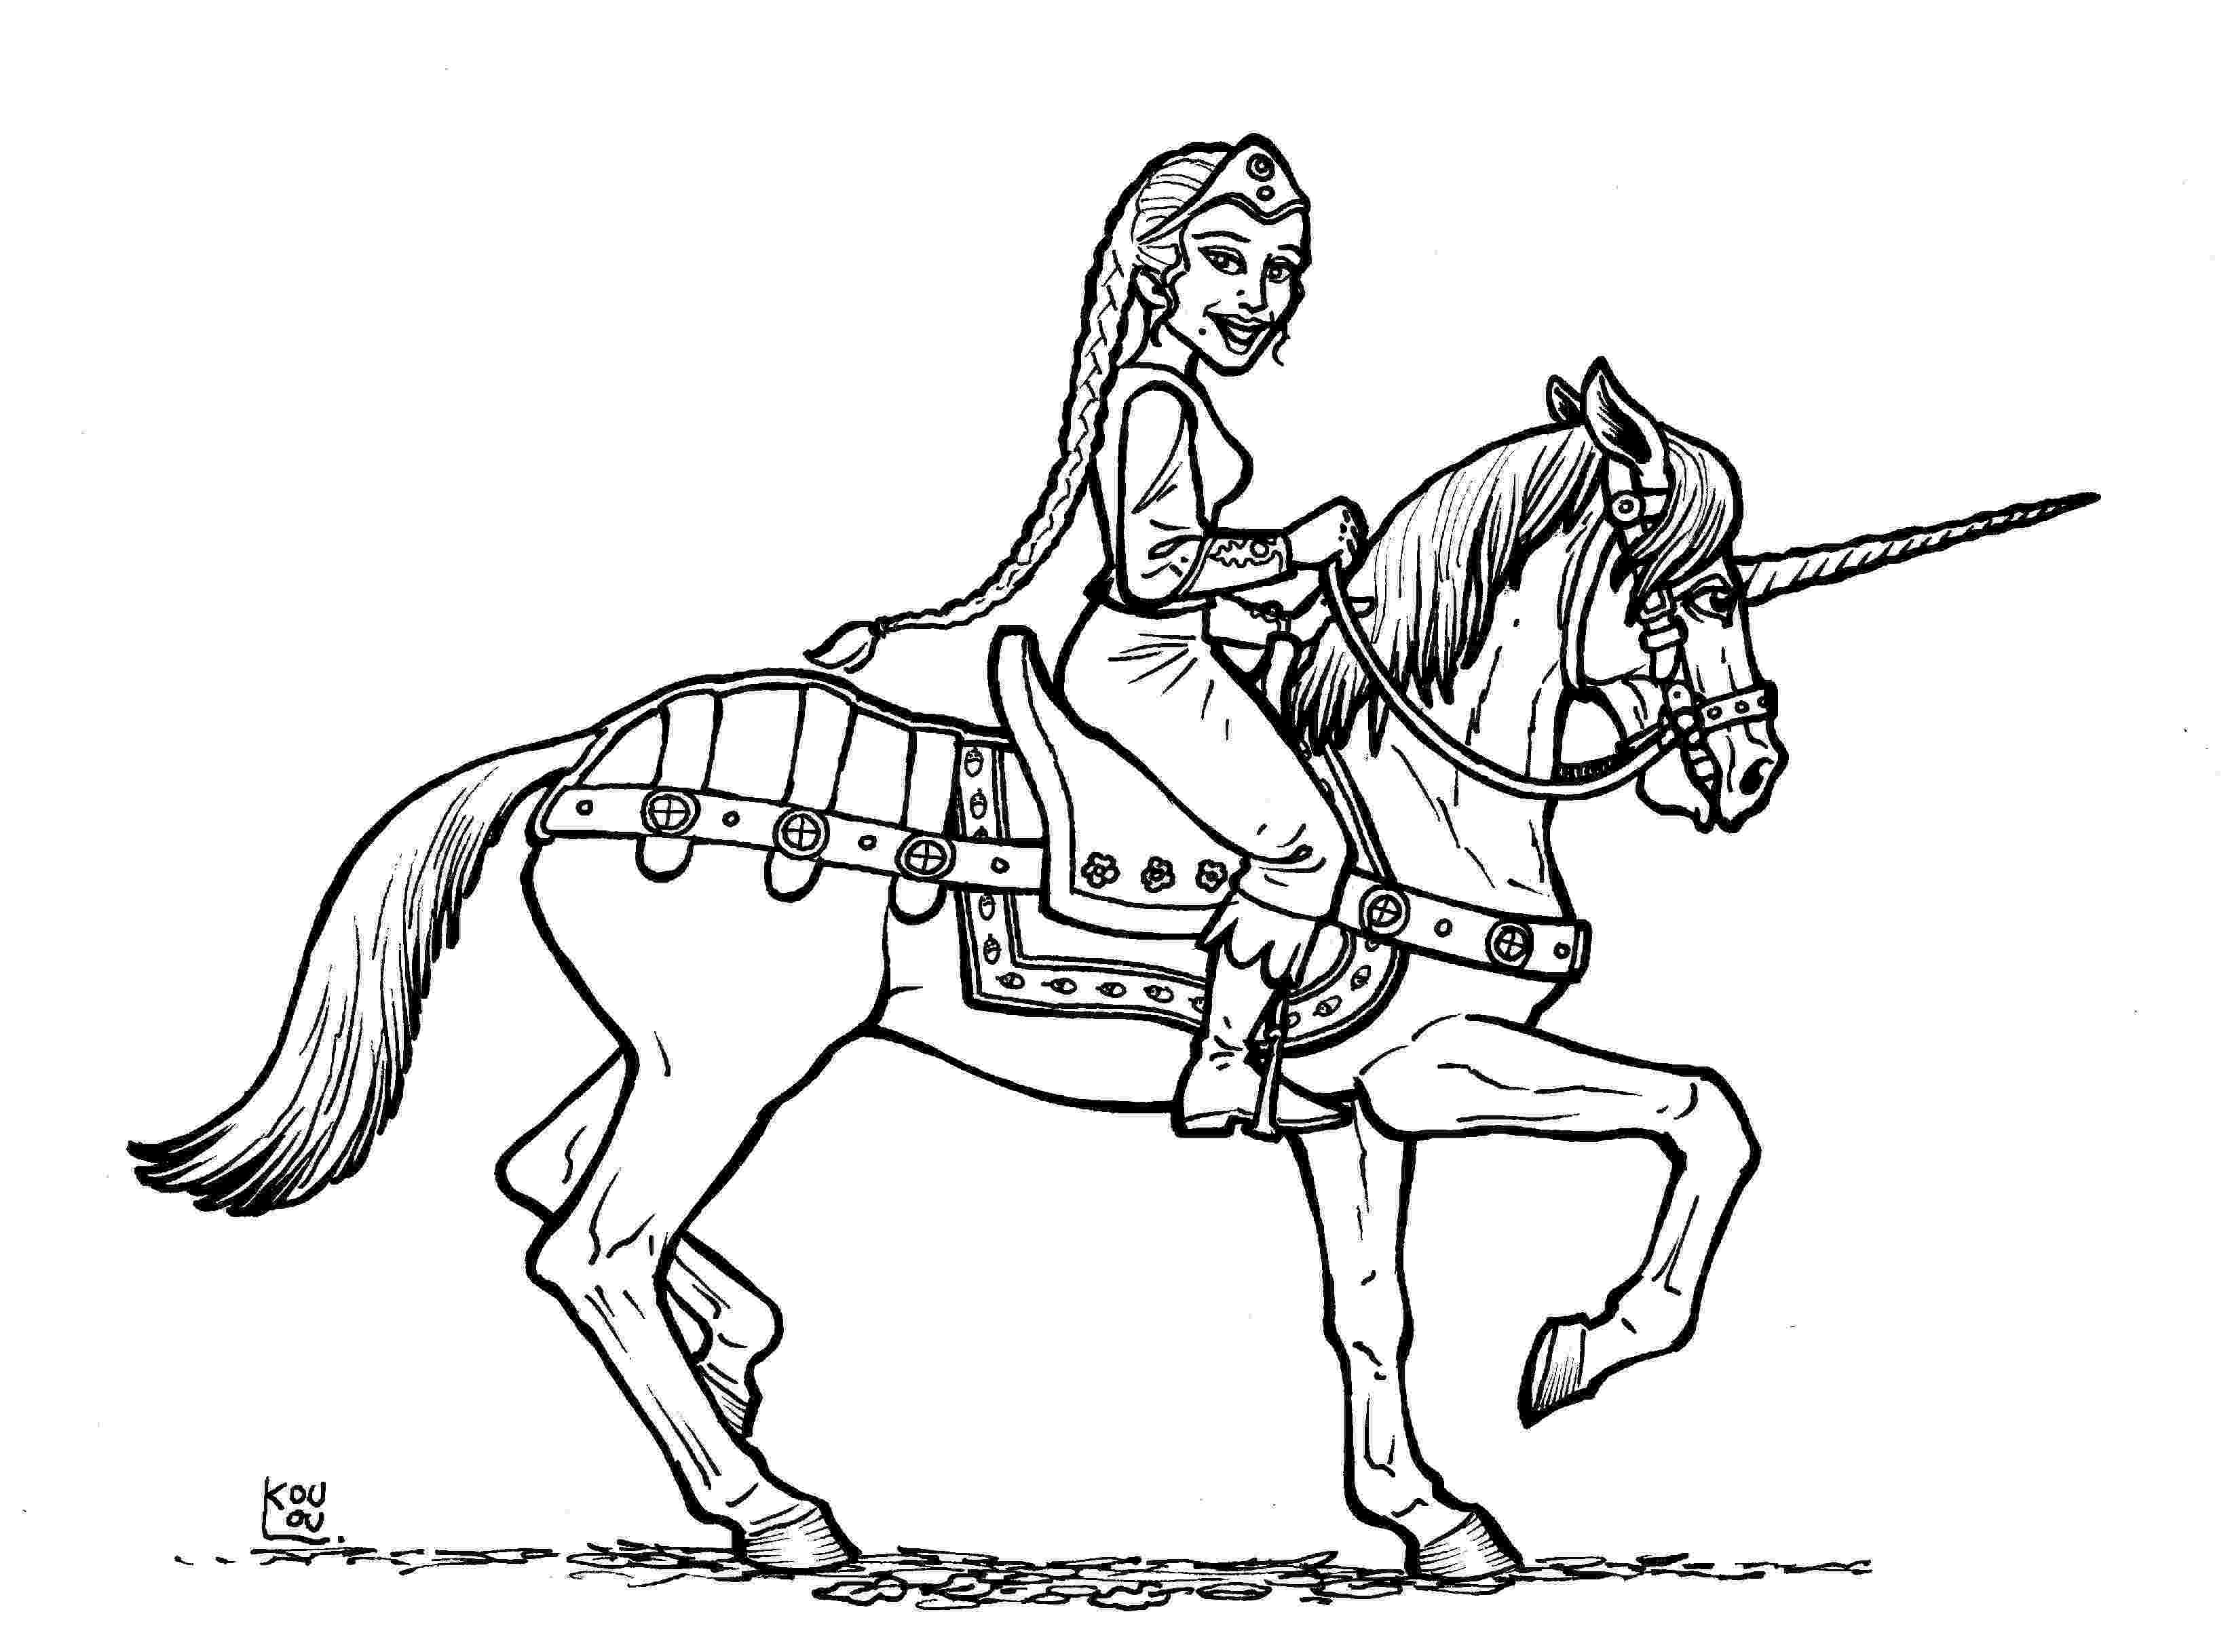 medieval colouring pages medieval coloring pages to download and print for free medieval colouring pages 1 2